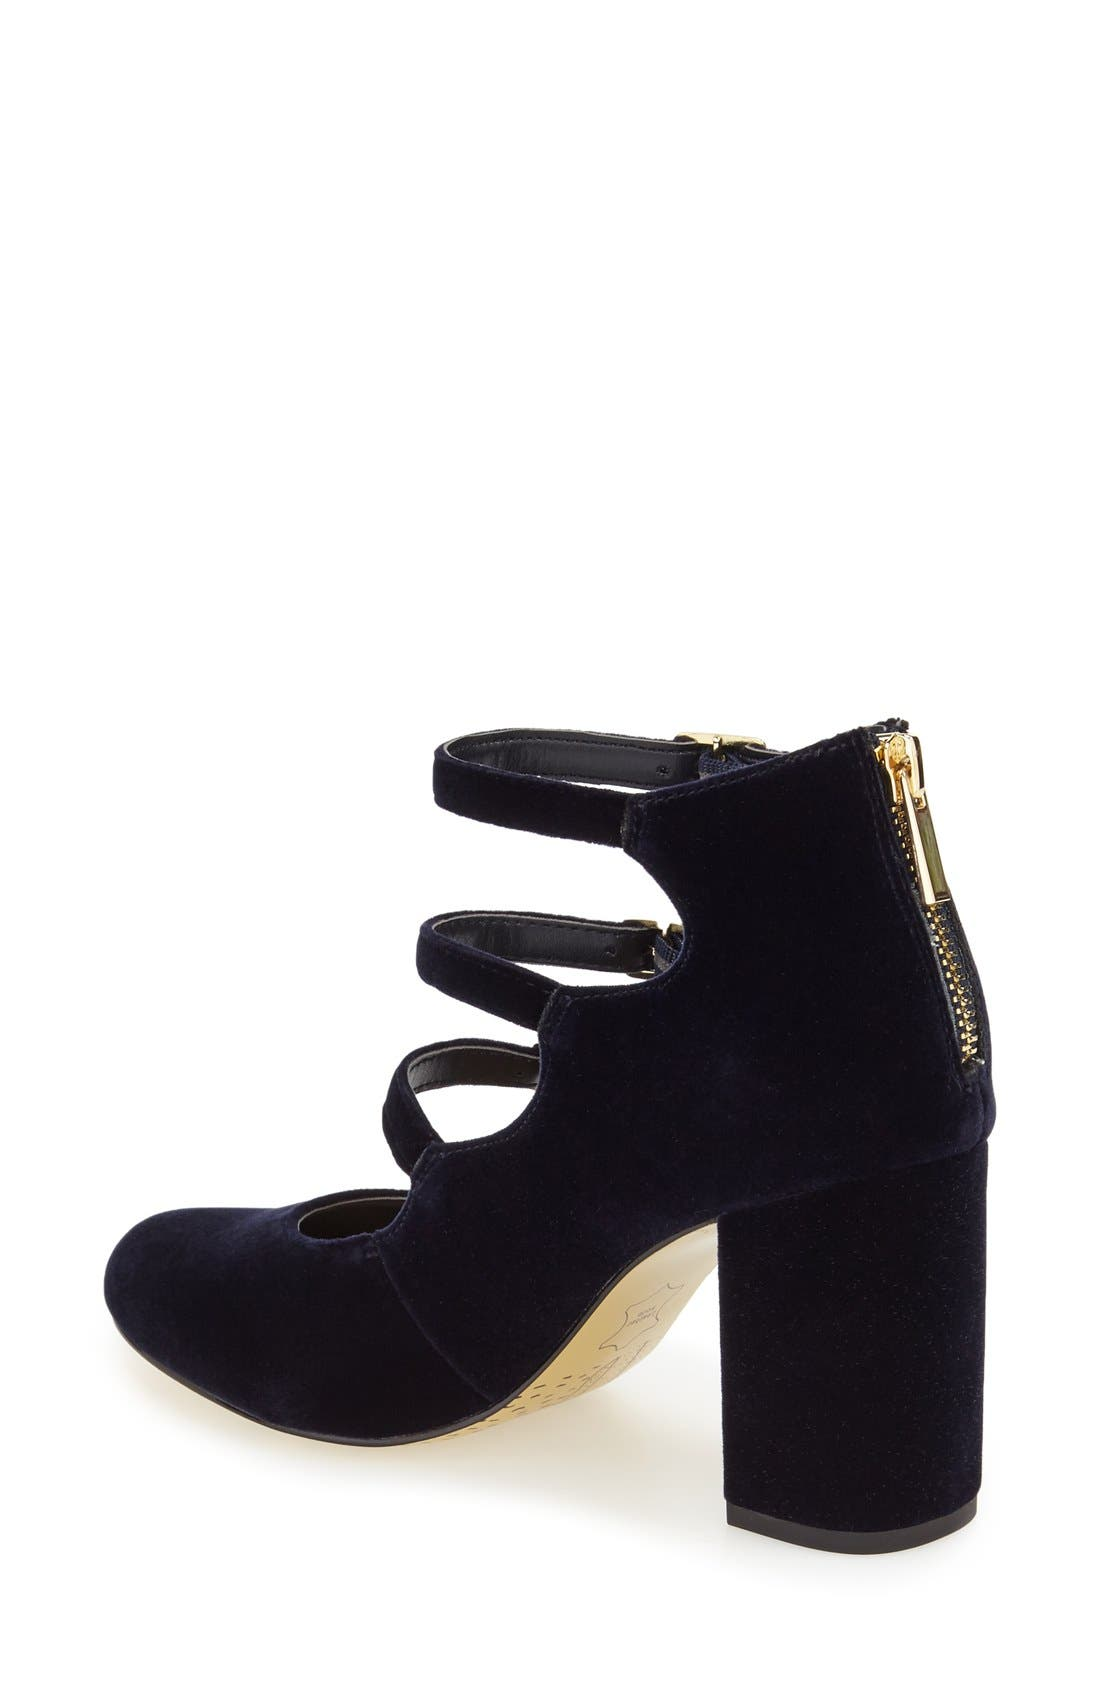 Alternate Image 2  - Bella Vita 'Nettie' Block Heel Pump (Women)